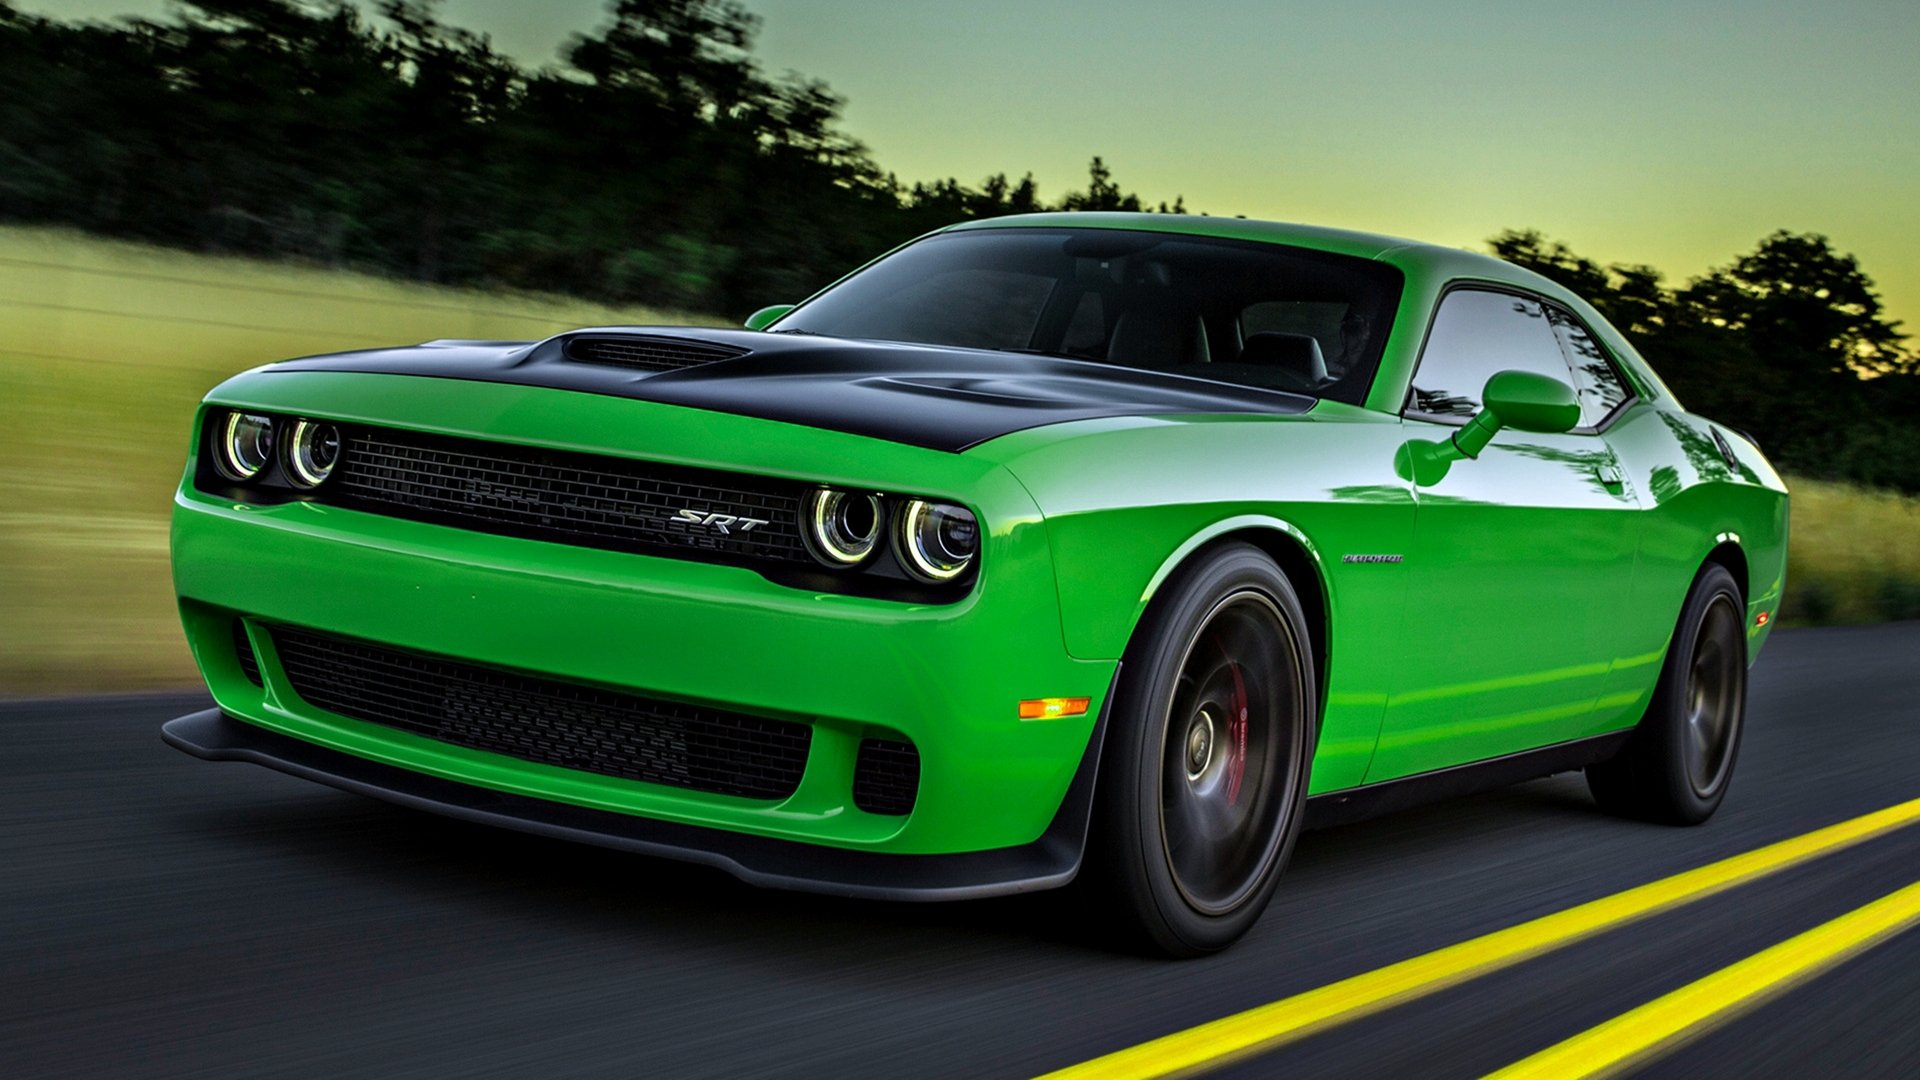 70 Dodge Challenger Srt Hd Wallpapers Background Images Wallpaper Abyss